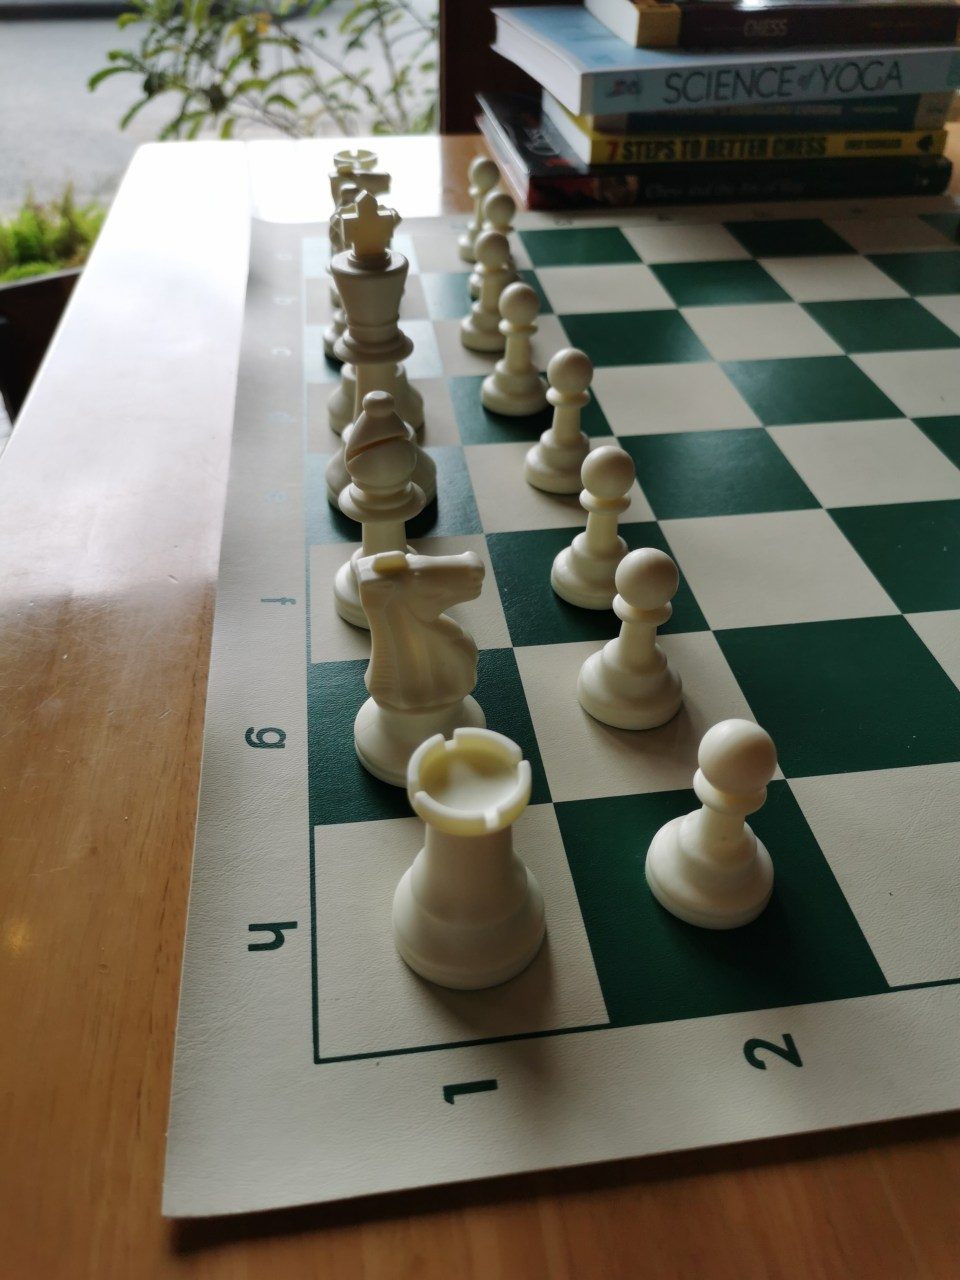 A chessboard in a cafe called Into the Woods.